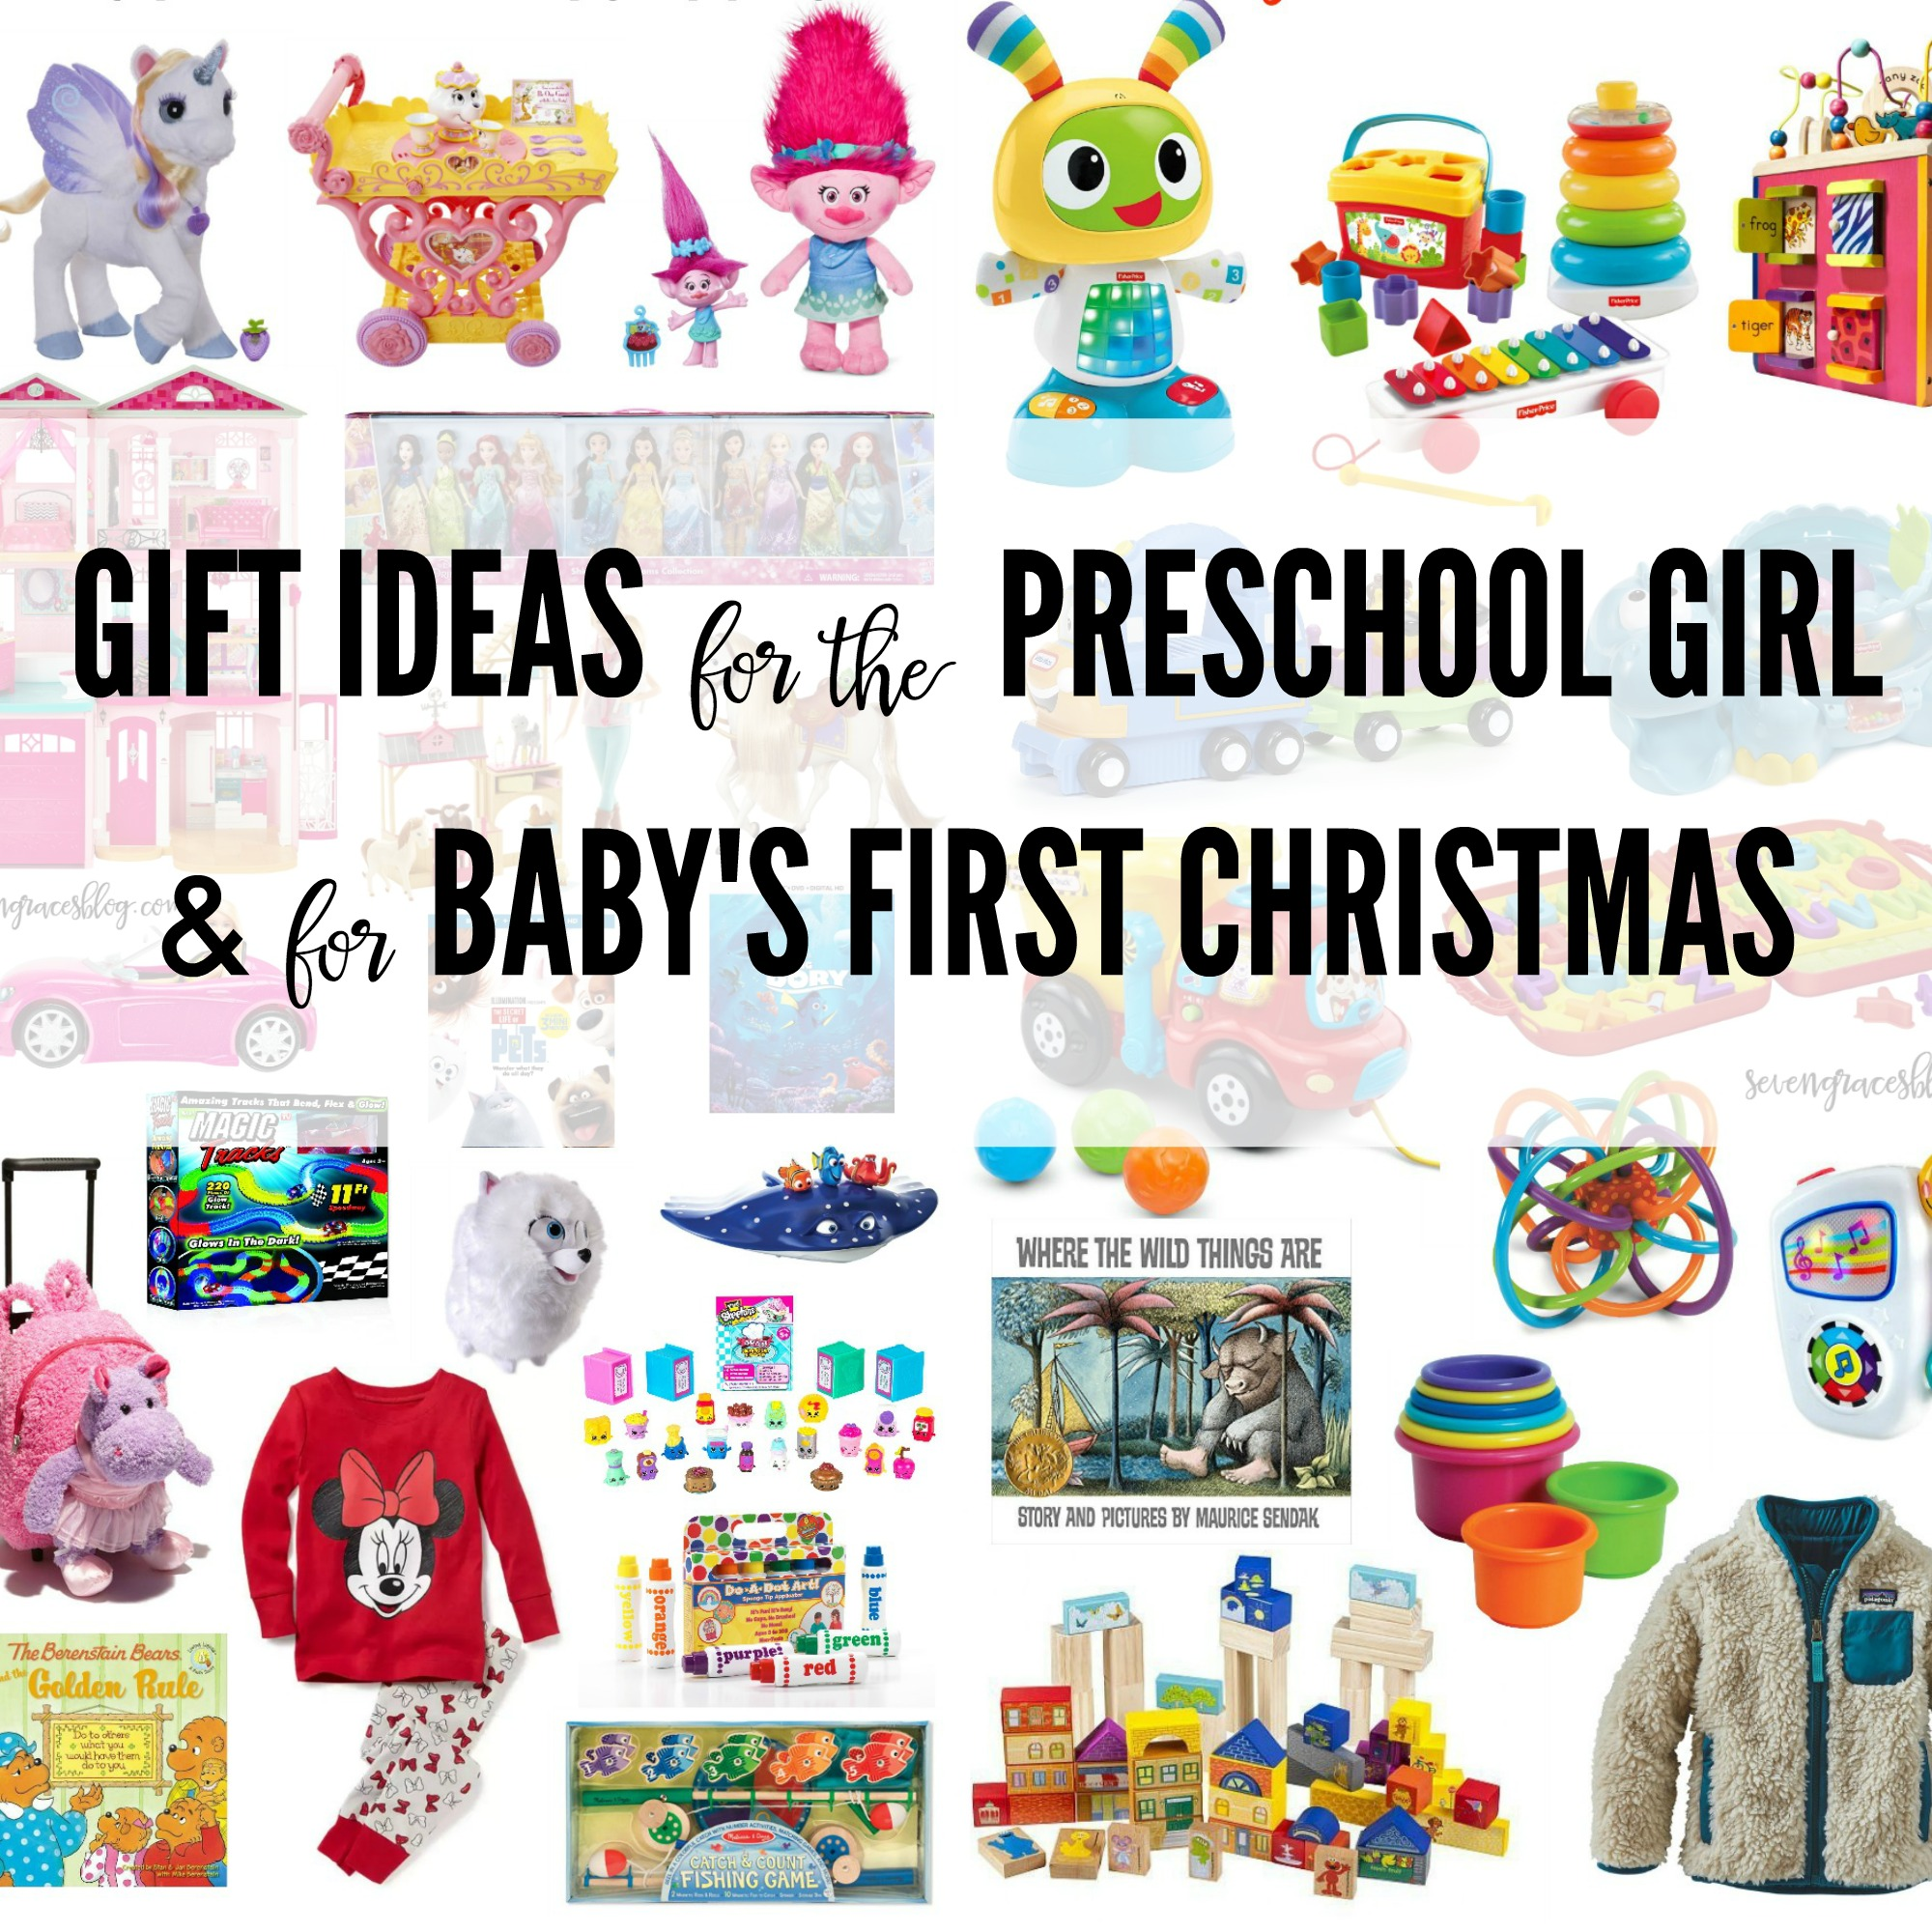 Gift Ideas for the Preschool Girl and for Baby's First Christmas